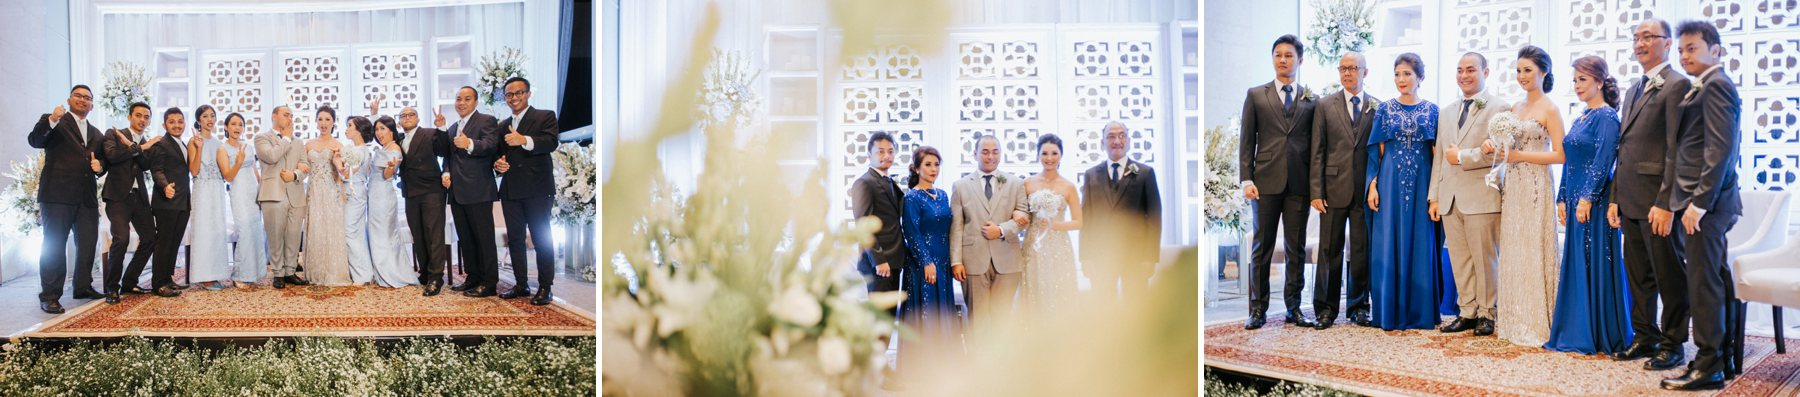 ascott_kuningan_wedding63